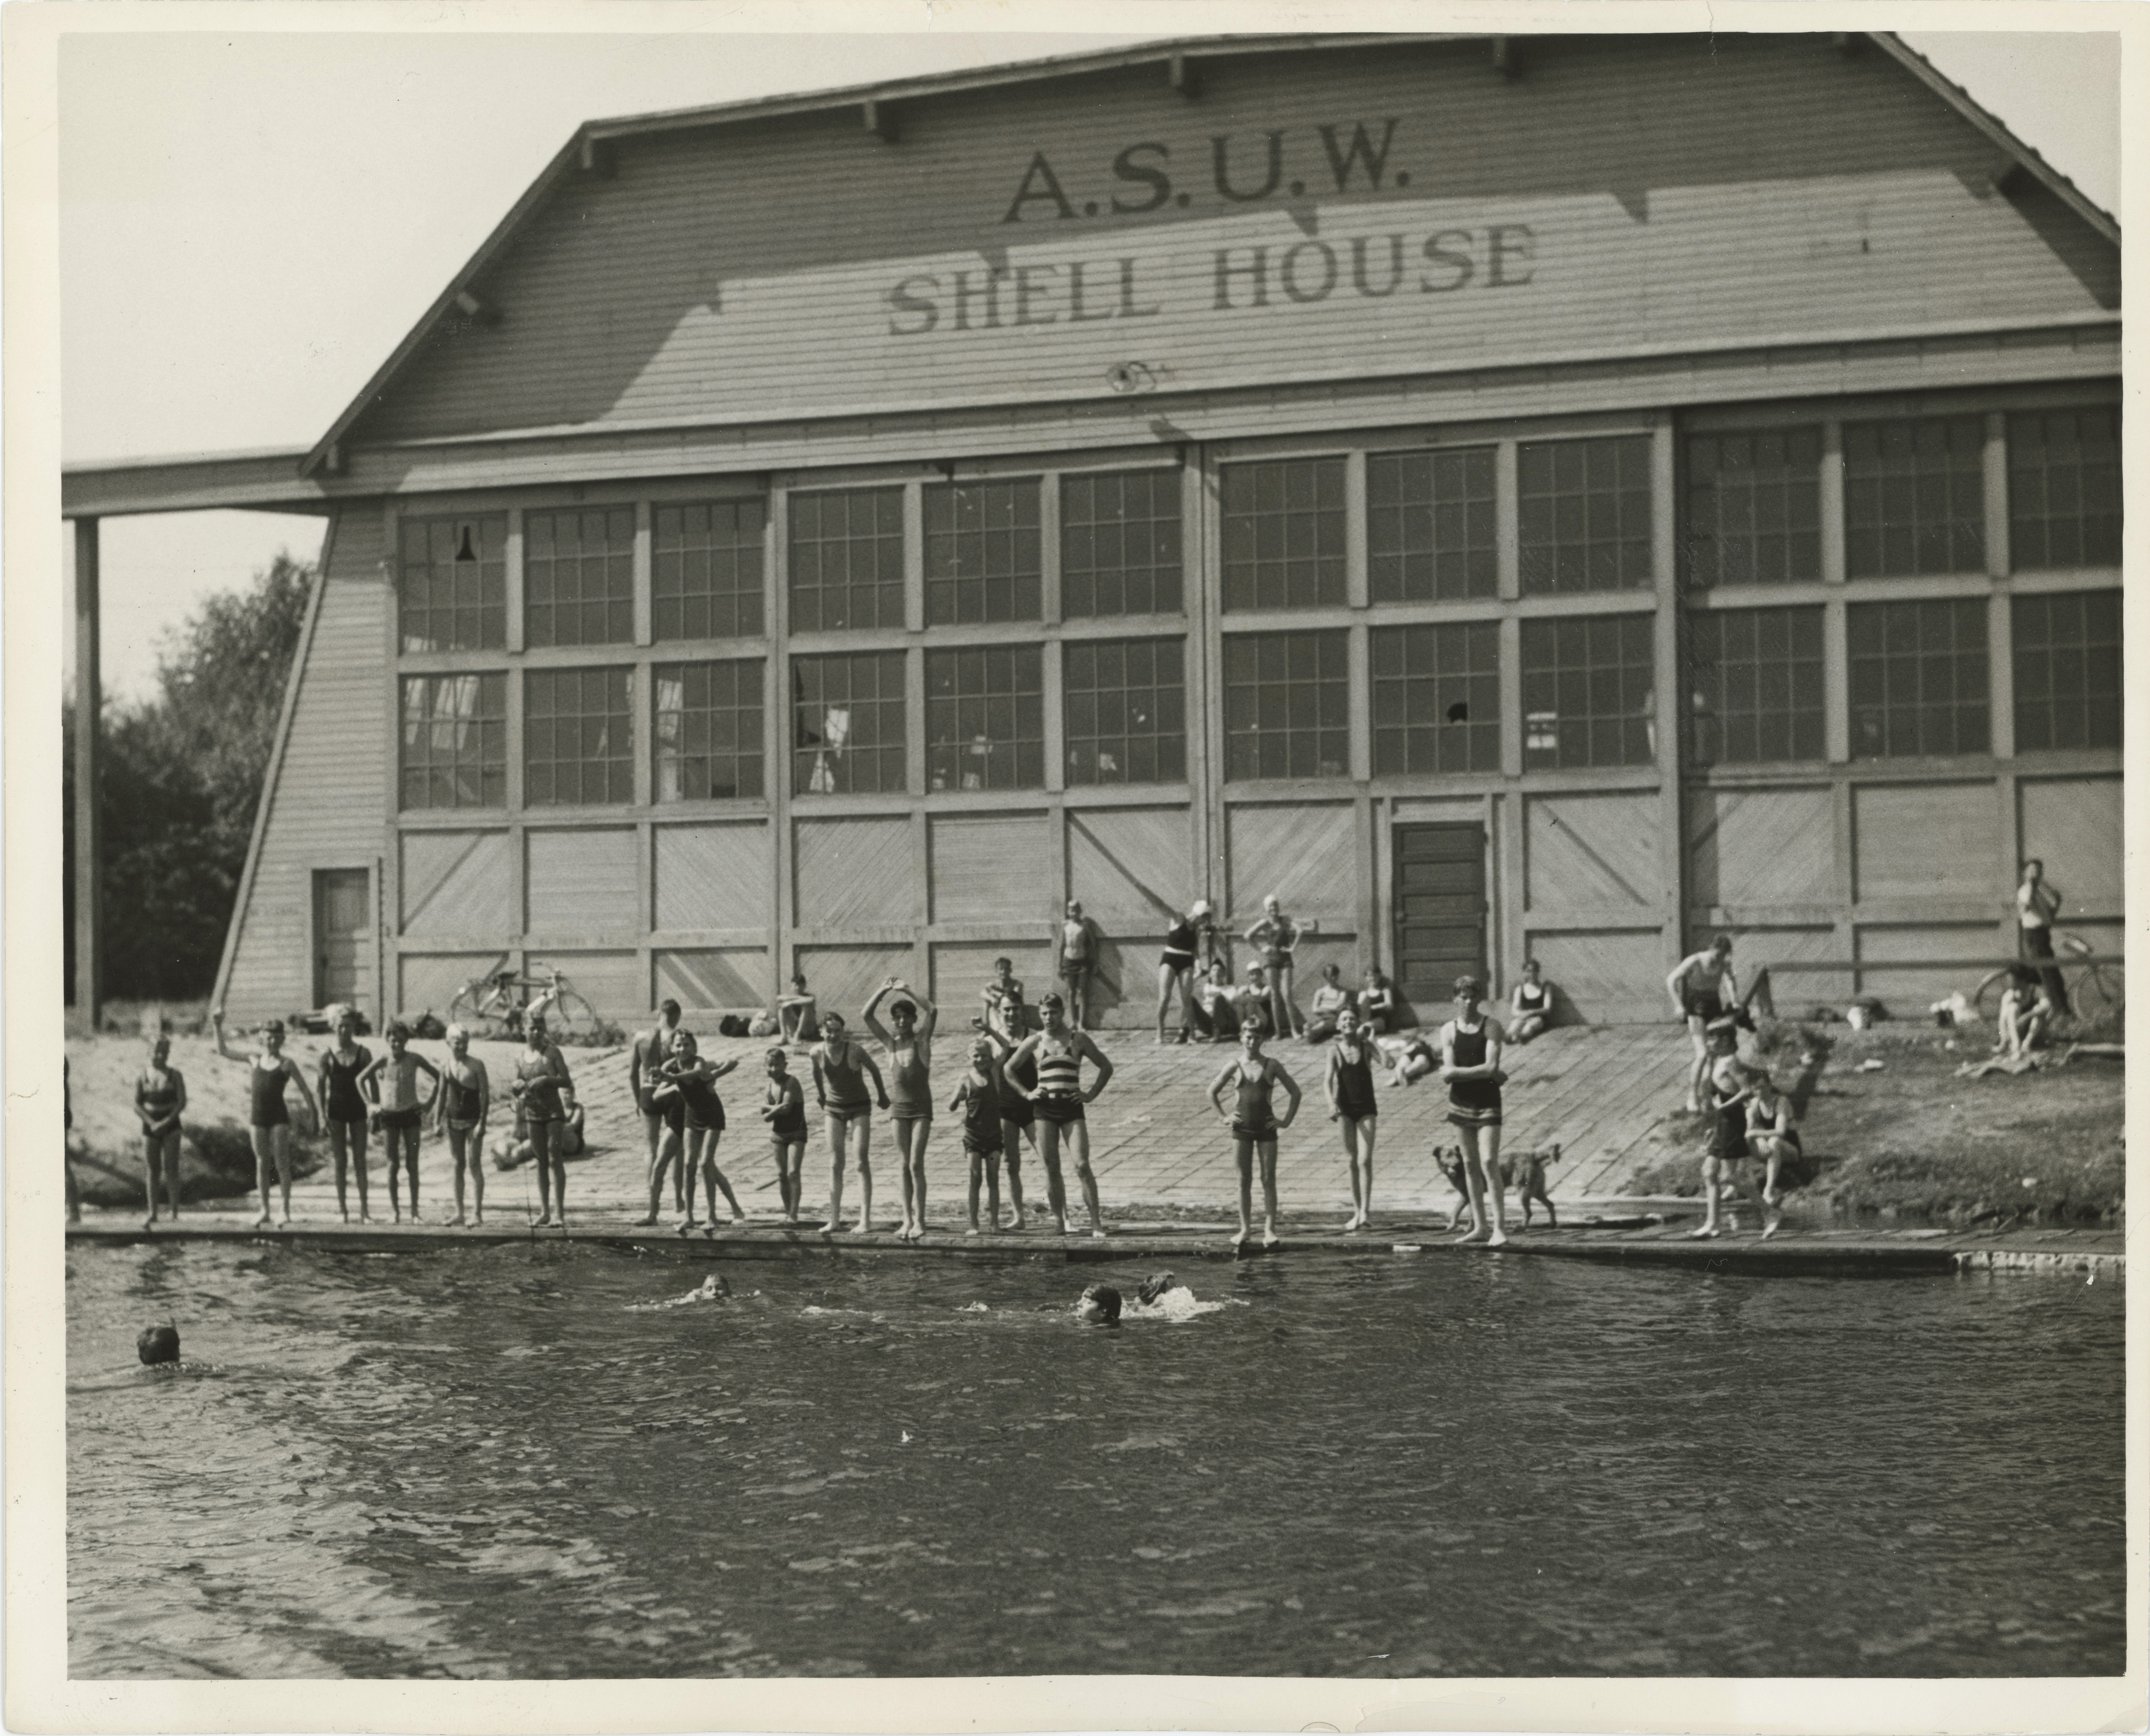 ASUW Shell House 1930 5k